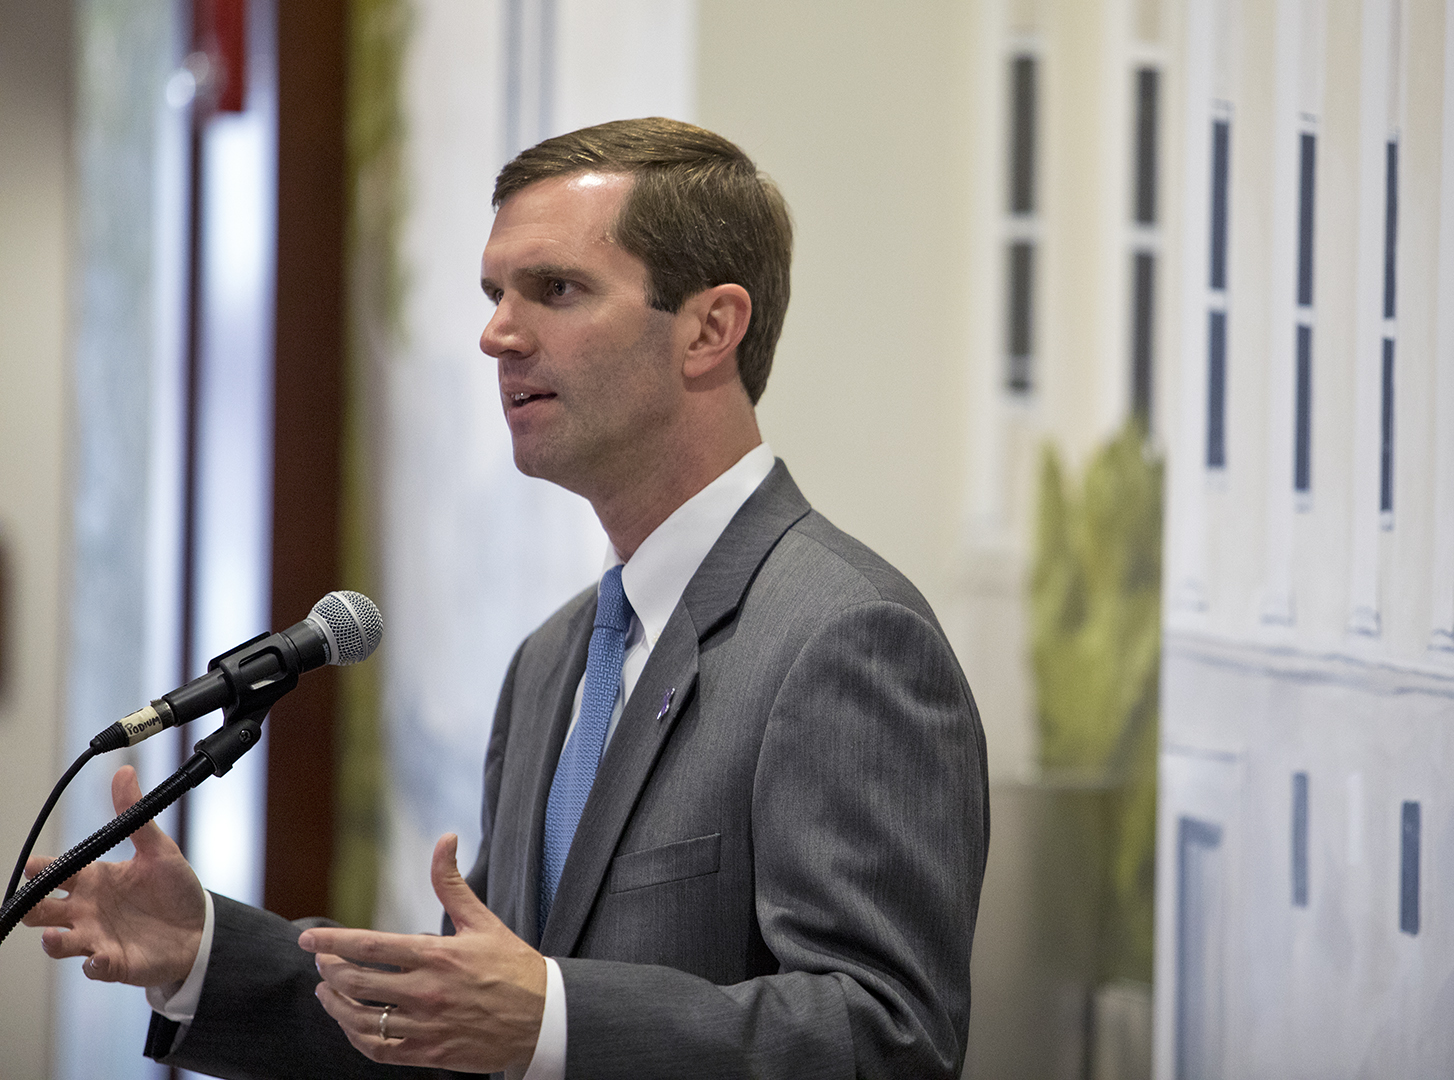 Attorney General Andy Beshear discusses how a community should remain safe by keeping violence out during the Proclamation Signing in the first floor of Downing Student Union on Oct. 9, 2017.